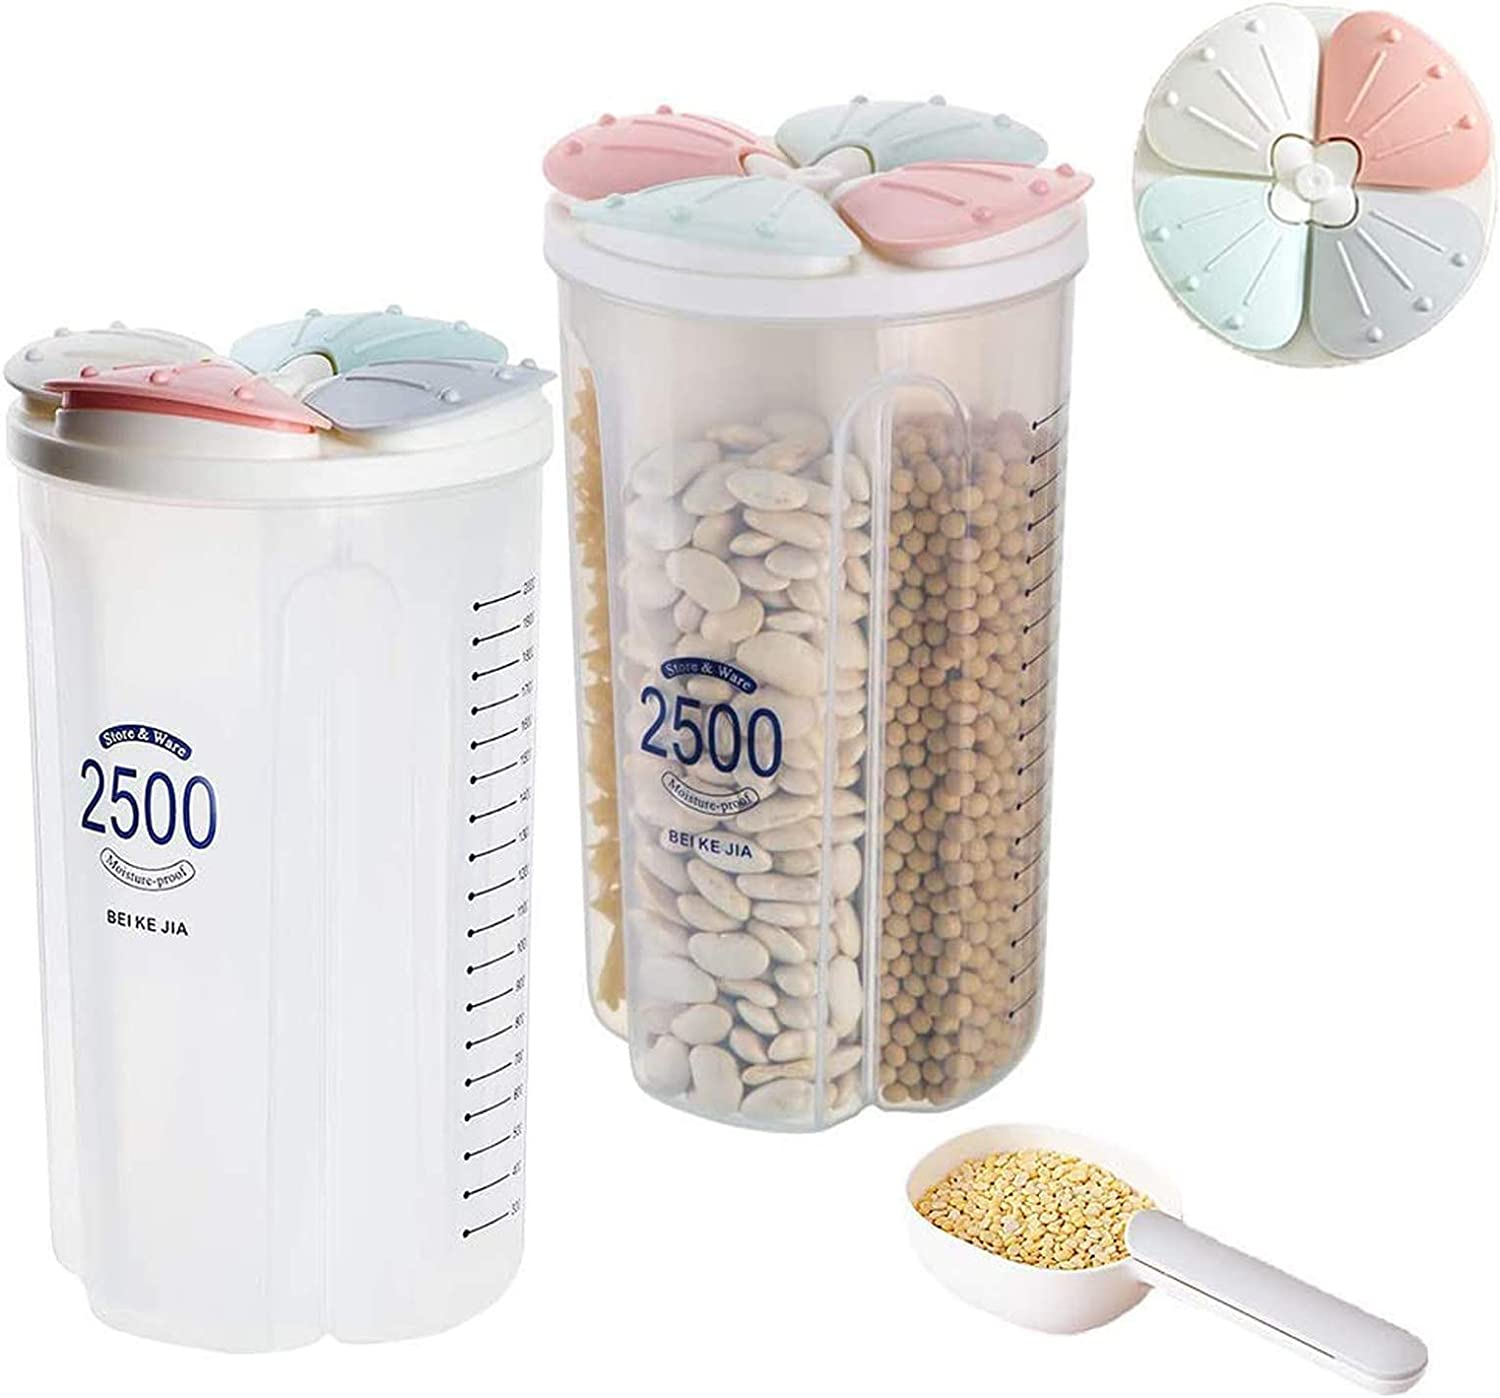 Grain Storage Container, Plastic Sealed Dry Food Storage Container with Lid, with Lid and Partition, for Grain, Sugar, Flour, Rice, Nuts, Coffee Beans (2.5 Liters) (4 Cells)